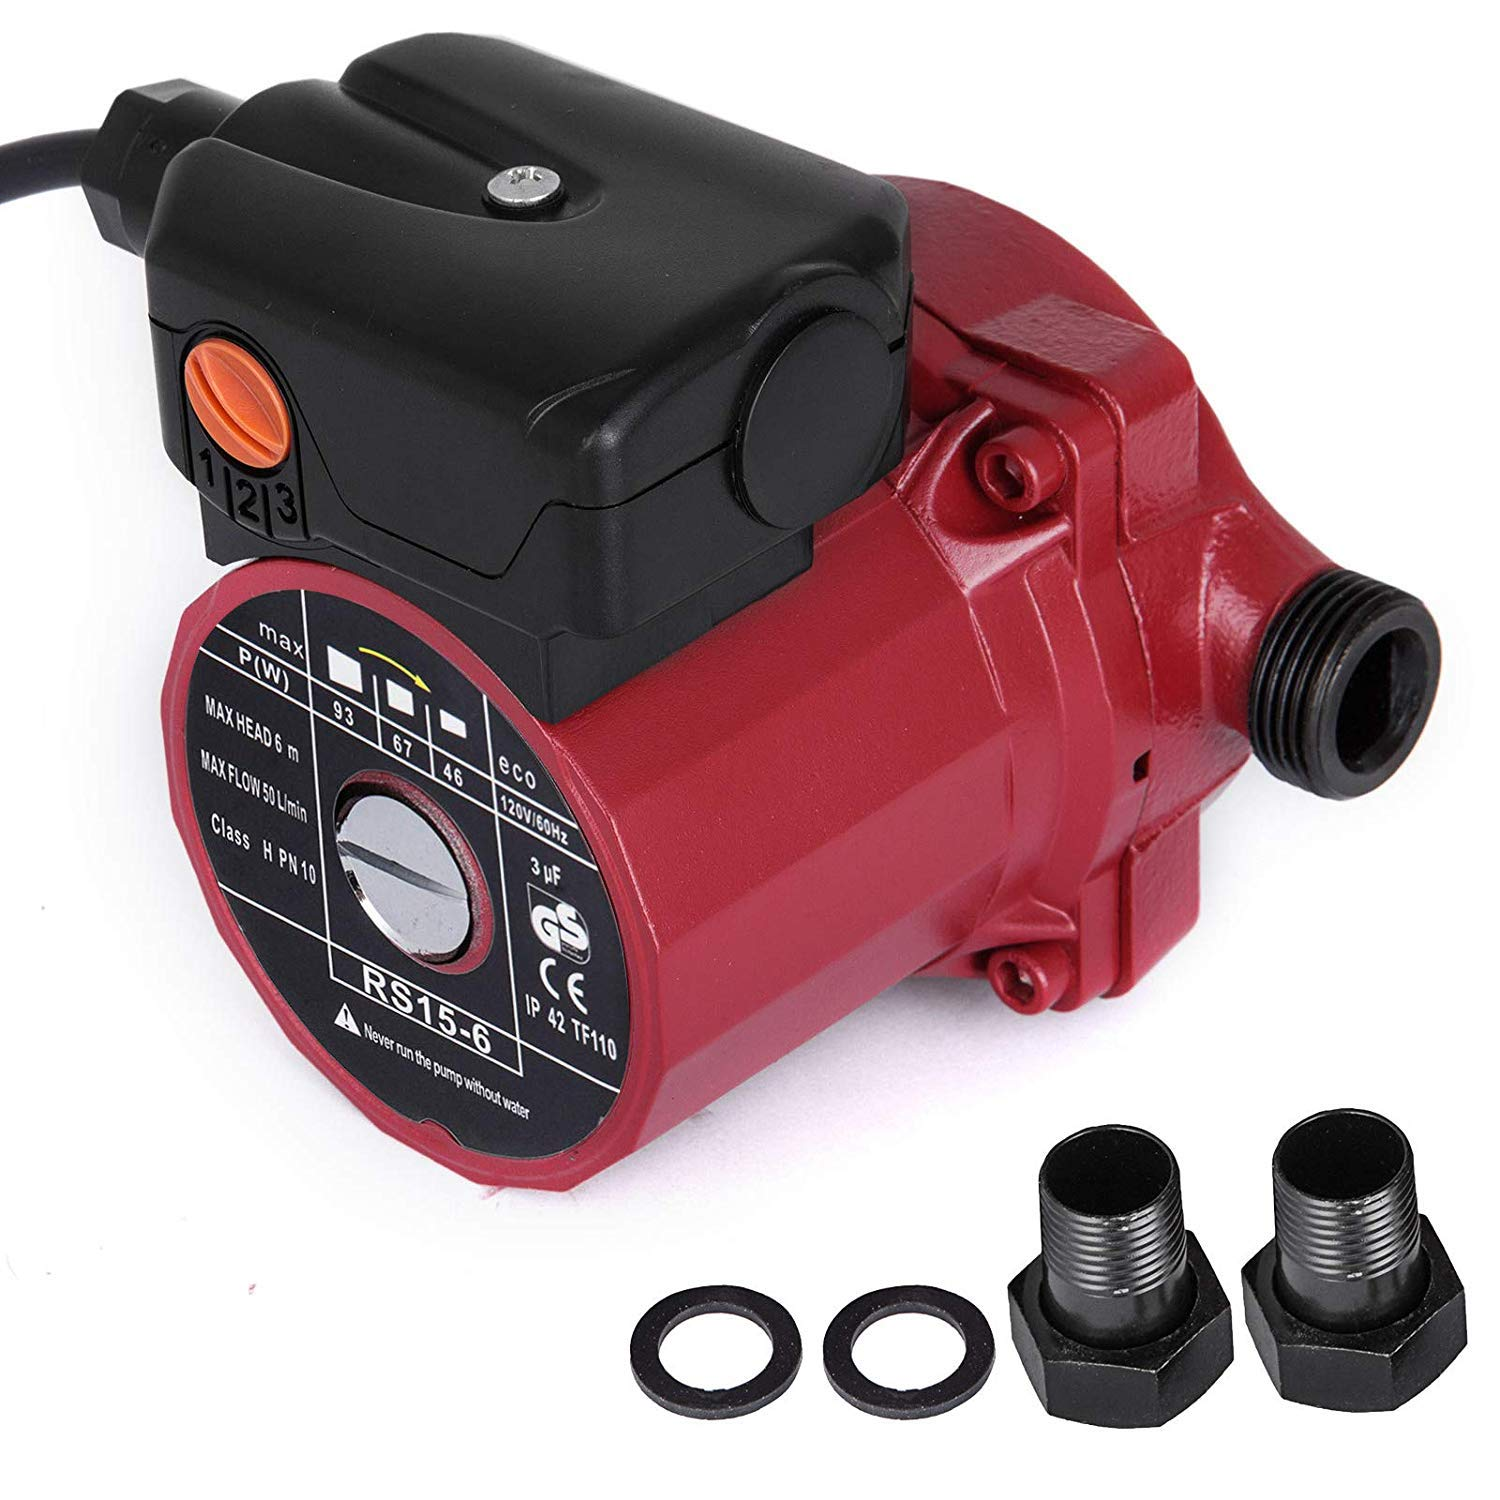 Happybuy RS15-6 Hot Water Recirculating Pump 110V Circulation Pump 3/4-Inch NPT 3-speed Recirculation Pump 9.5 Gpm for Water Heater System by Happybuy